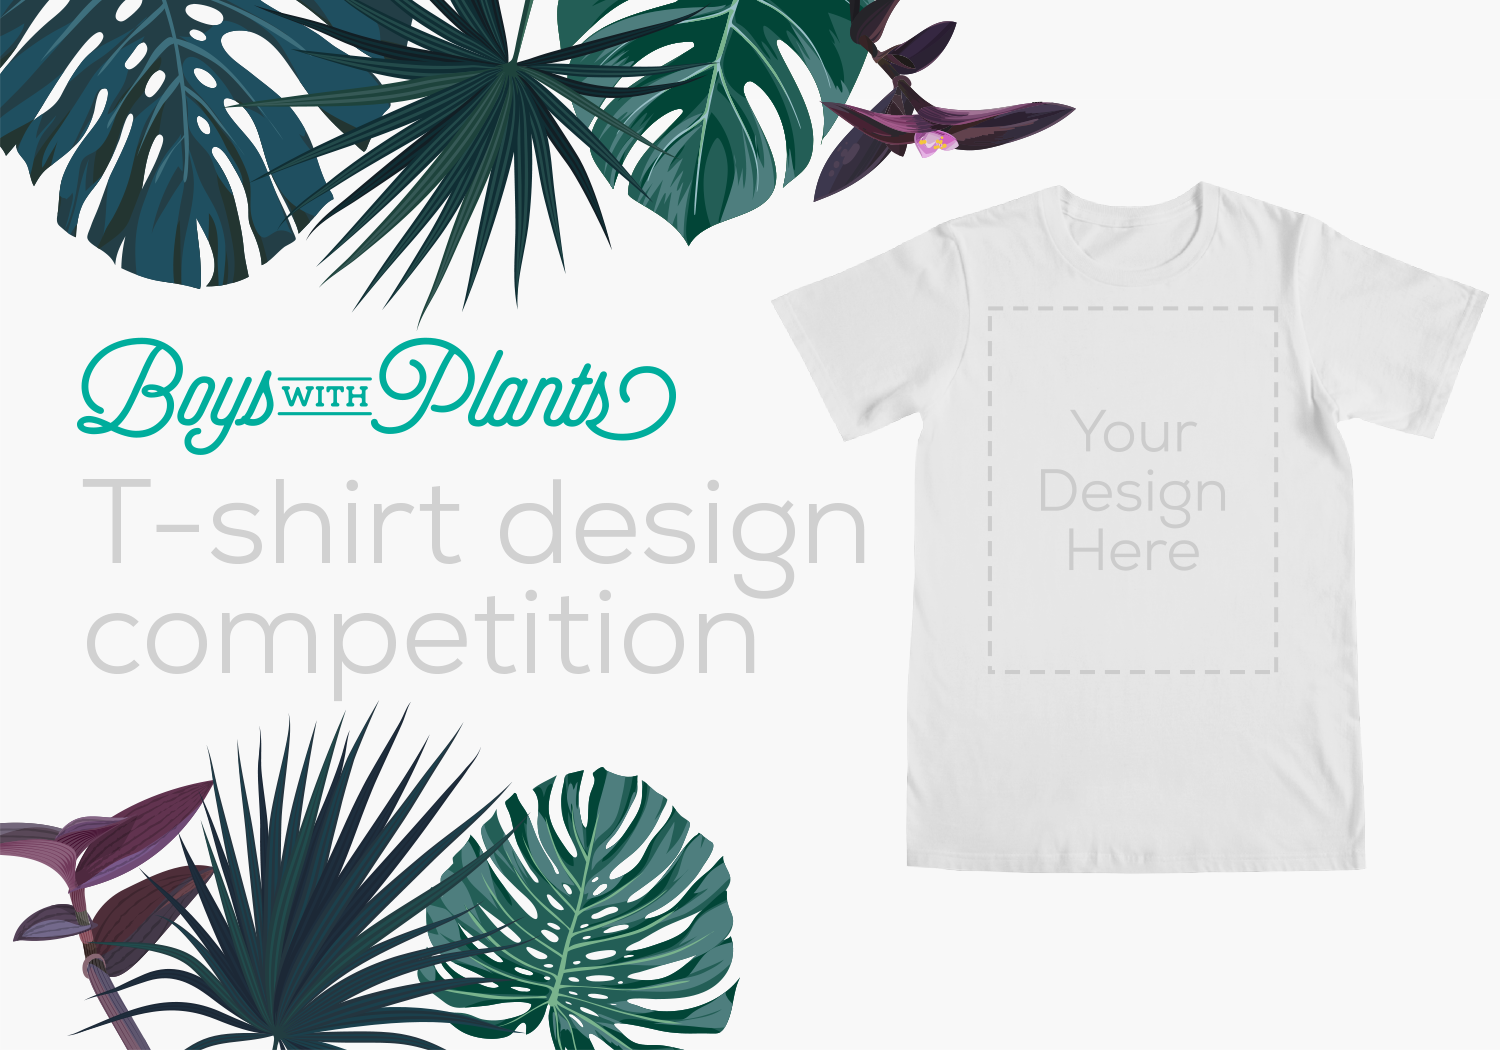 T-shirt Design Competition